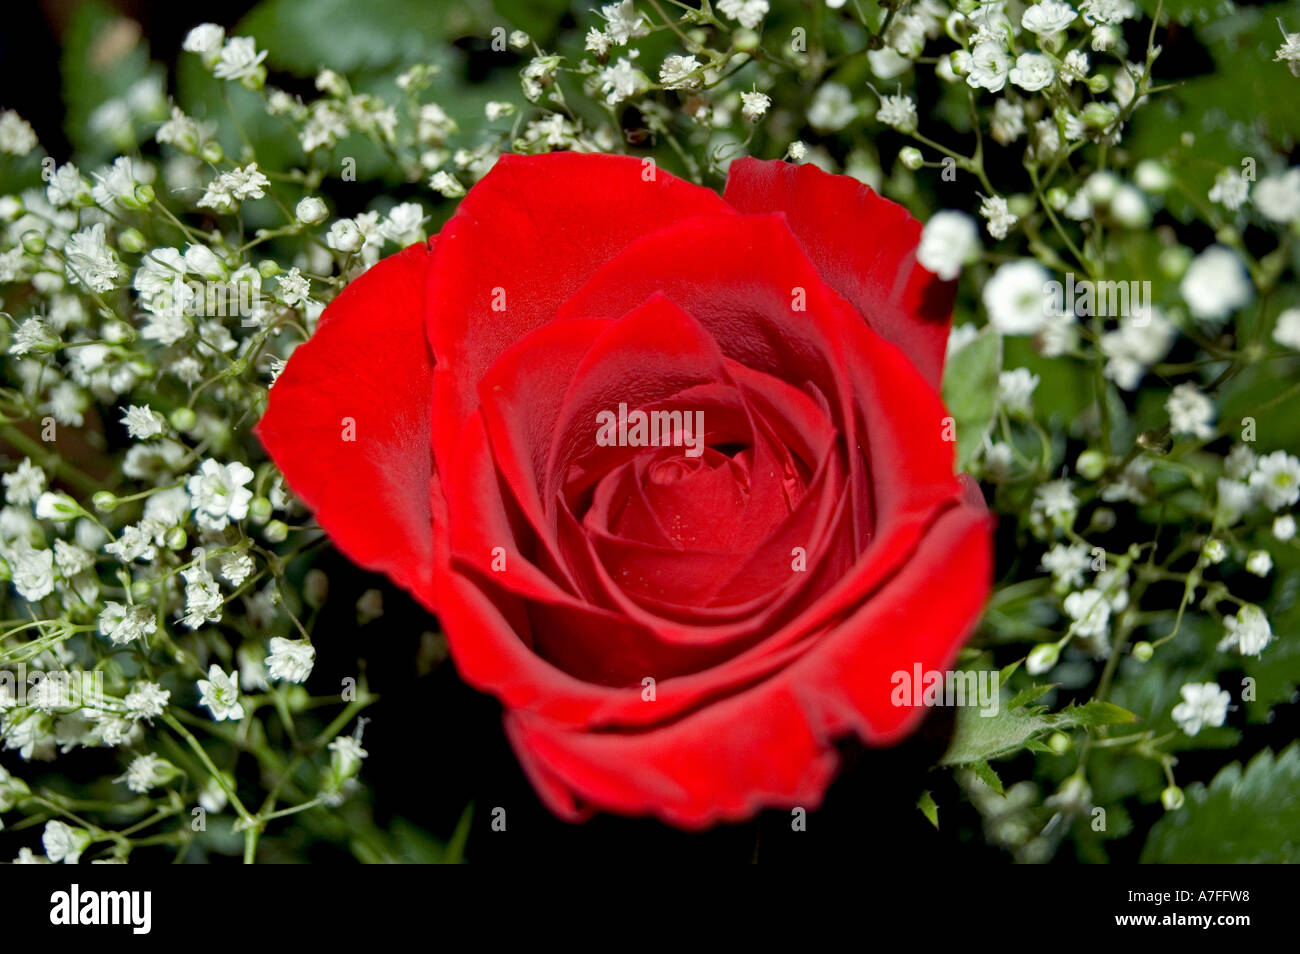 Rose and baby breath flower bouquet stock photo 6757079 alamy rose and baby breath flower bouquet izmirmasajfo